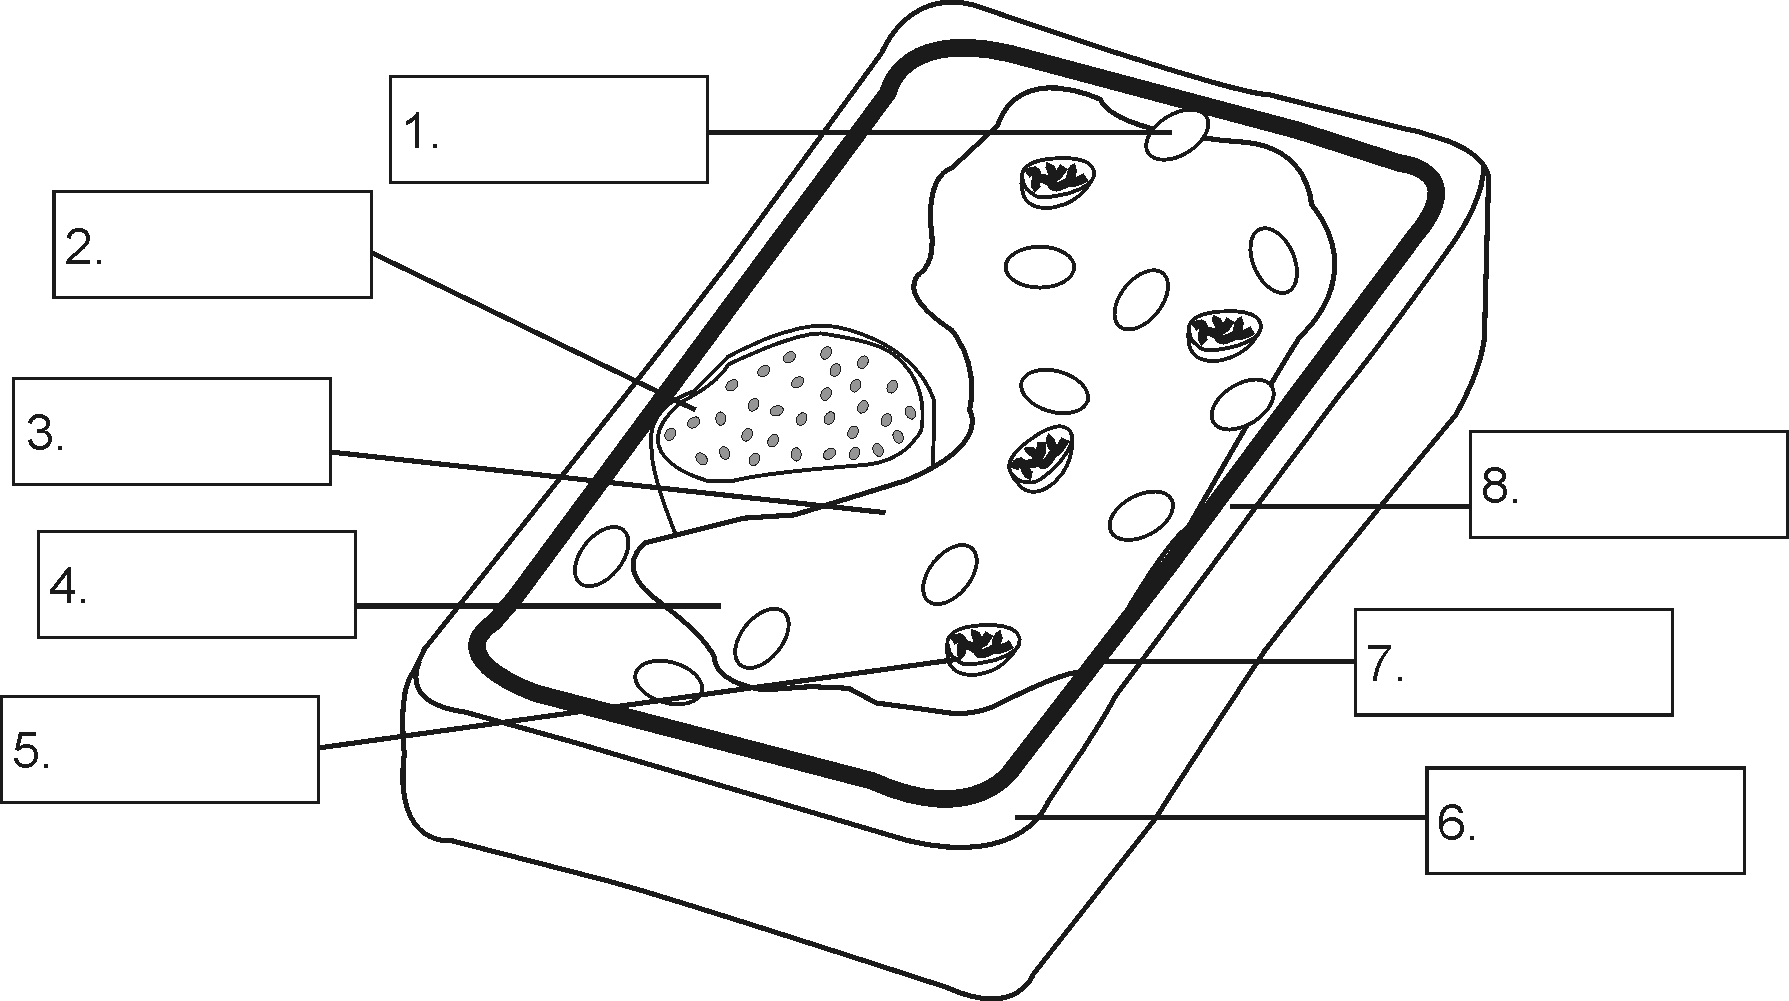 Animal Cell 3d Unlabeled And Plant Diagram Not Labeled